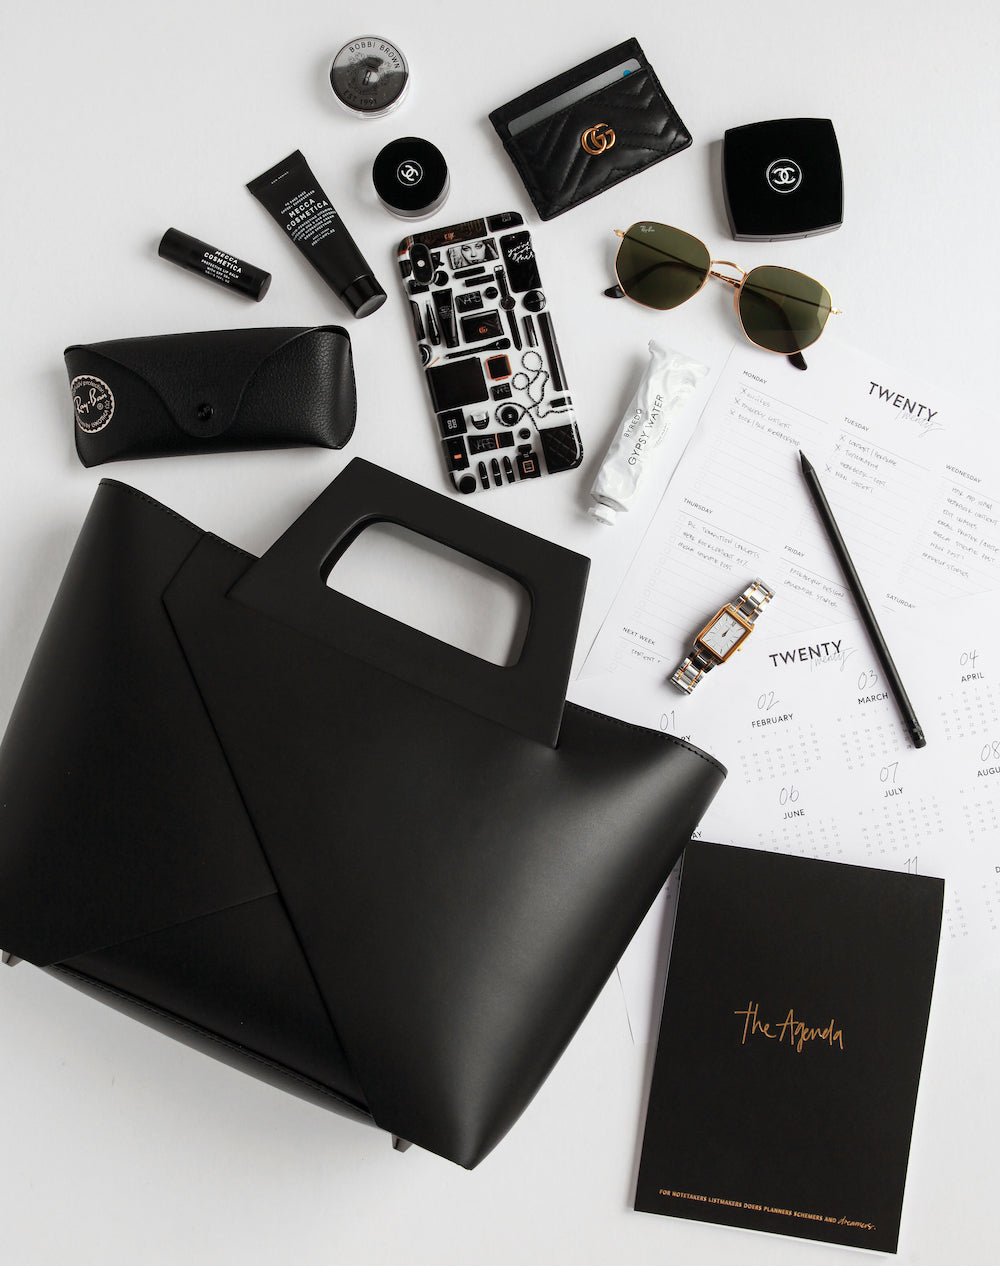 The Agenda notebook alongside VESTIRSI Lindsay bag and some of Carissa's other monochrome daily essentials